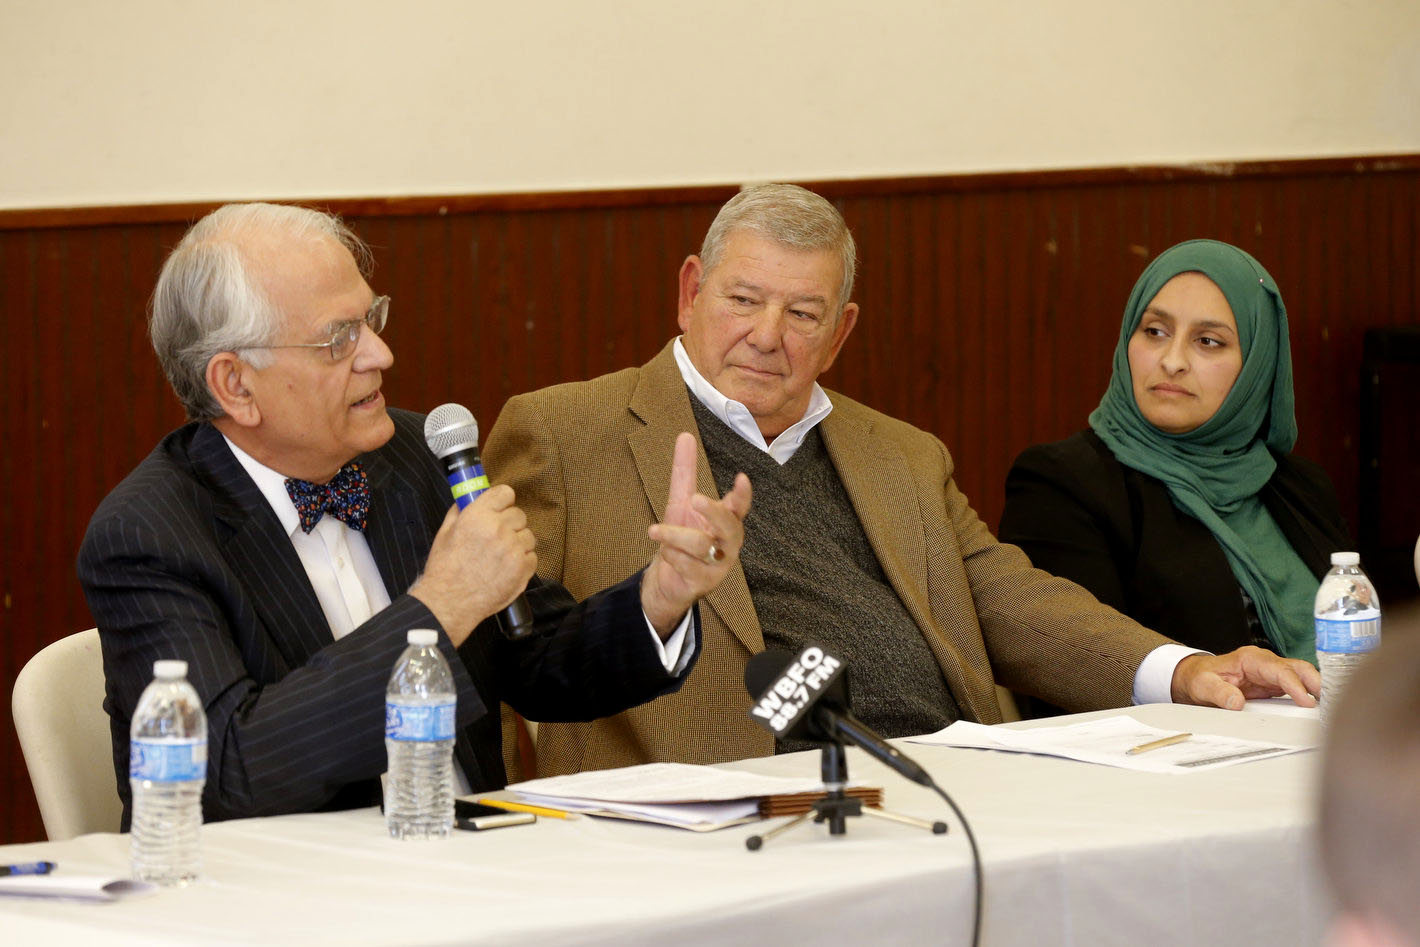 A panel, from left, Dr. Khalid J. Qazi, Lee Coppola  and Gamileh Jamil discusses journalism and Islam. (Robert Kirkham/Buffalo News)